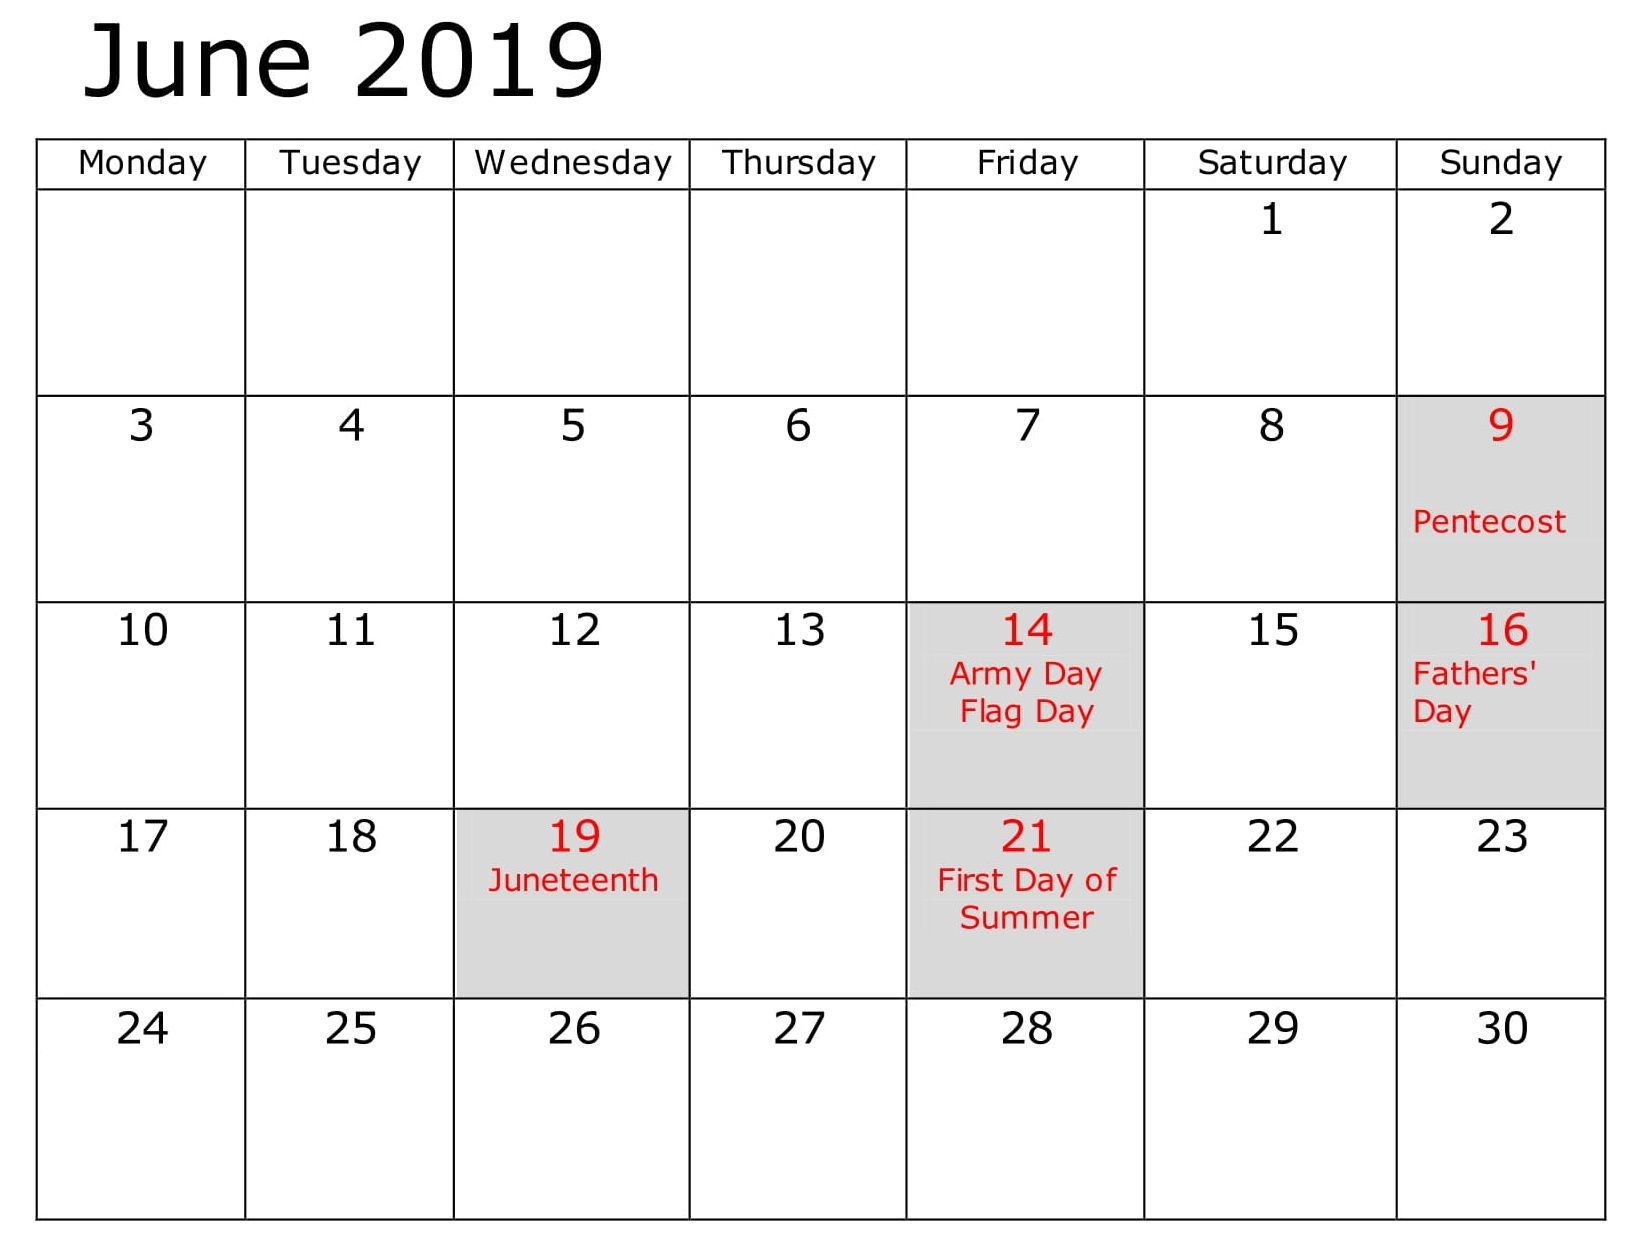 Calendar June 2019 Business With Holidays With Images Calendar